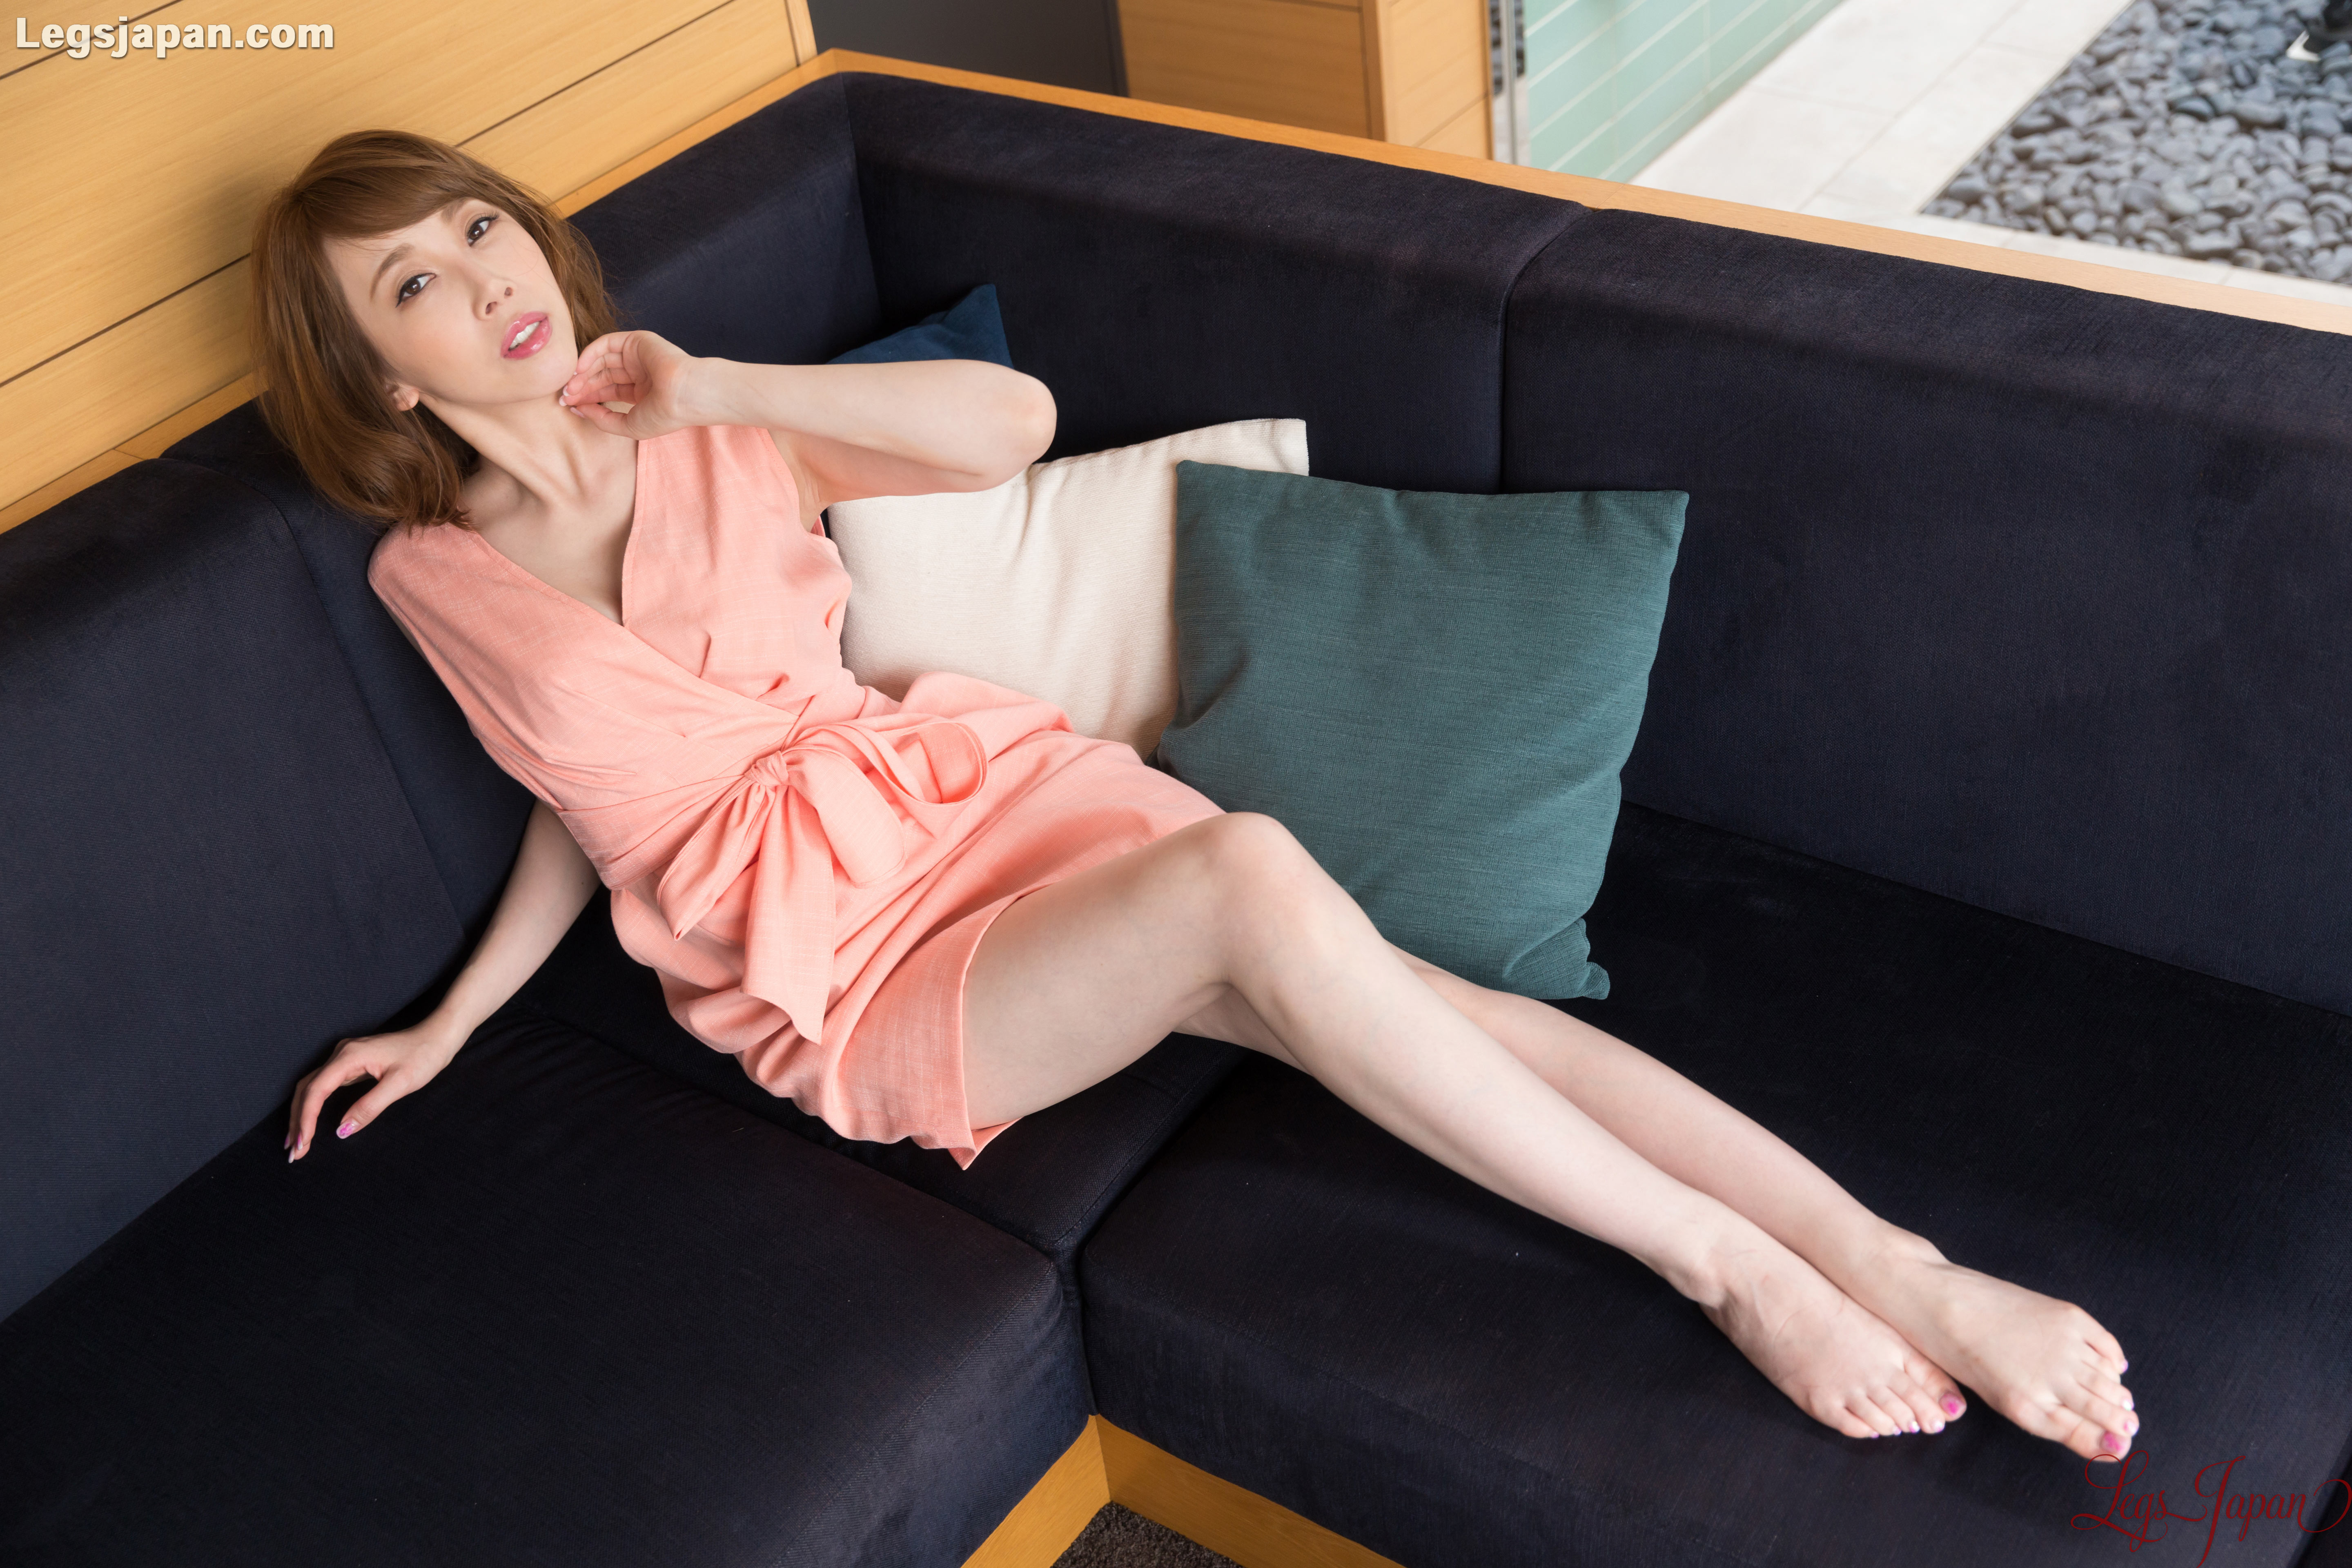 Free sex video in office-8850